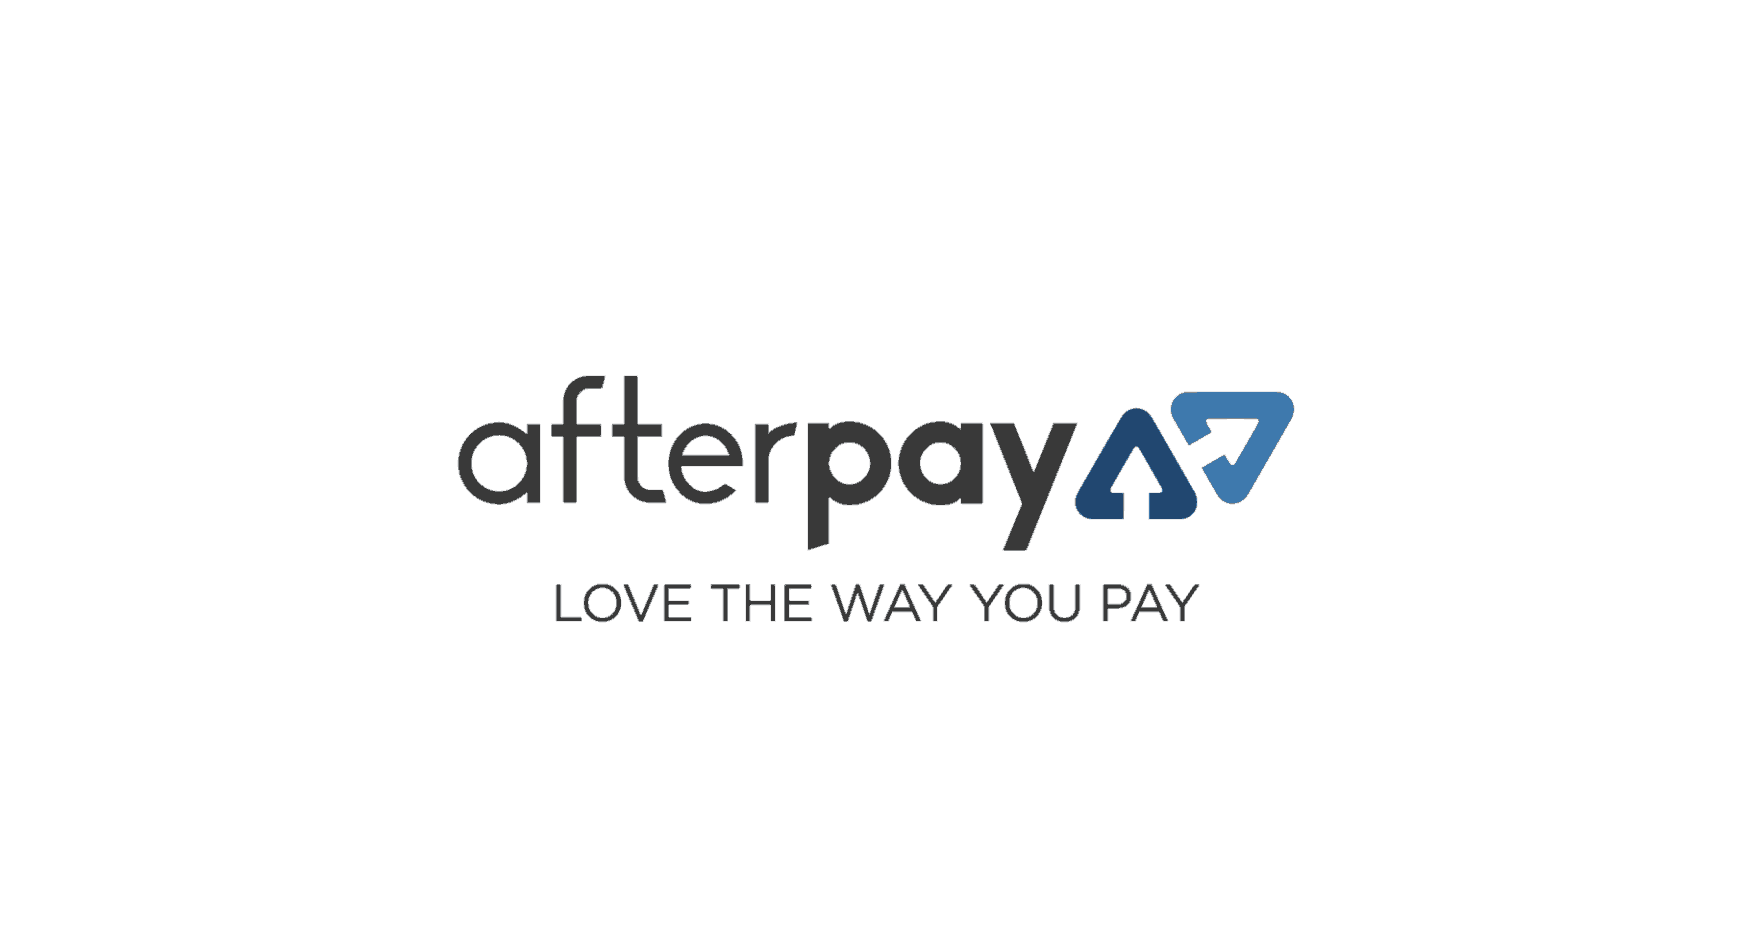 afterpay share price